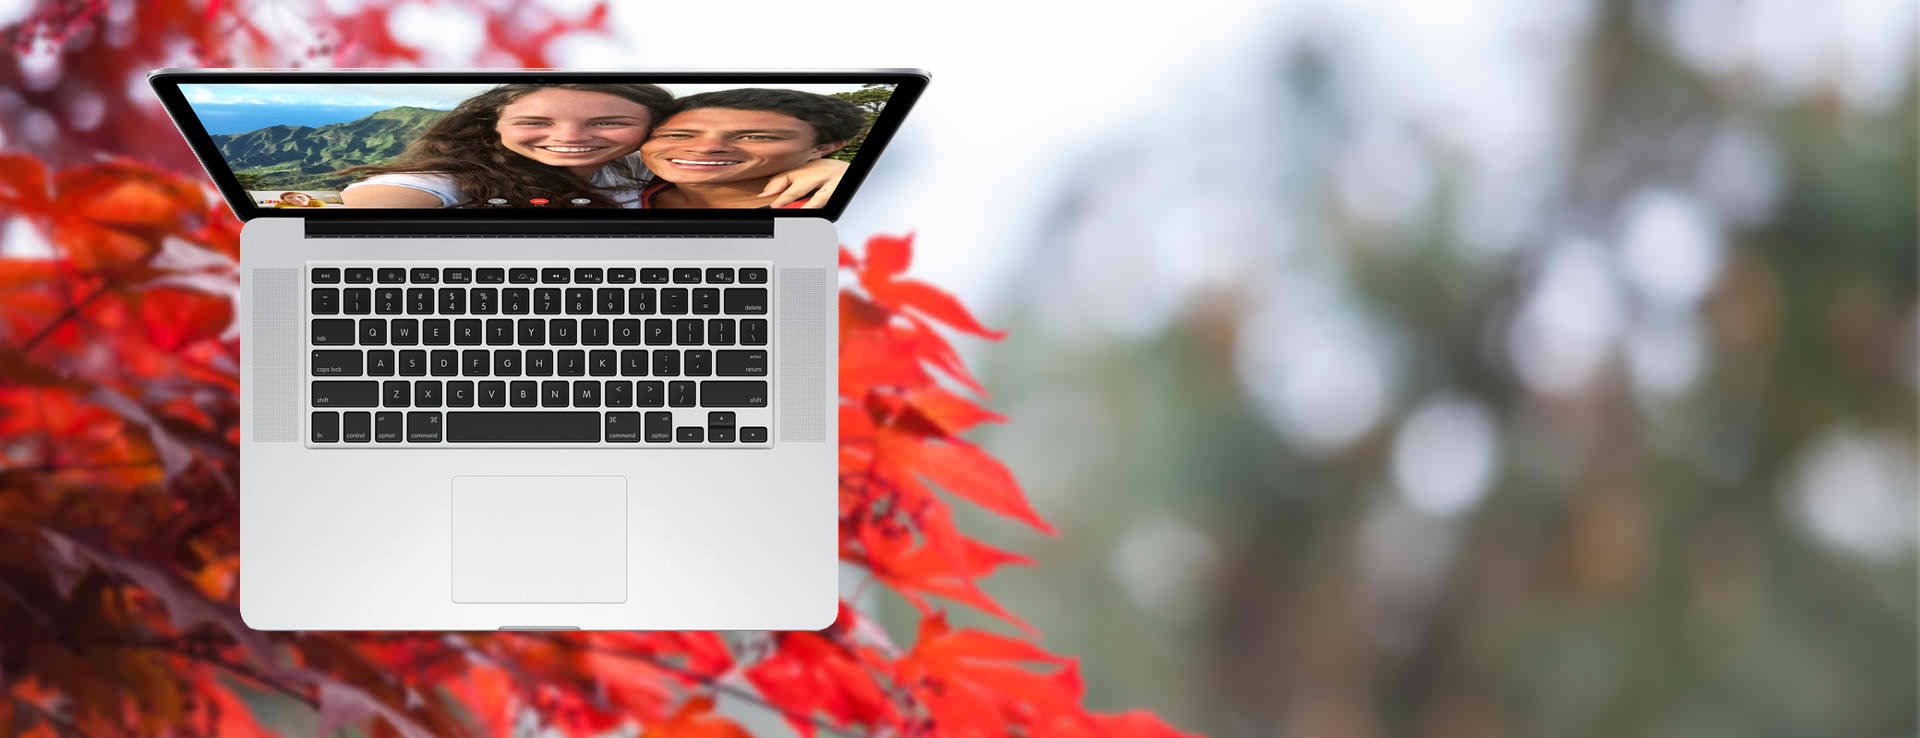 Refurbished Macbook Pros on Sale